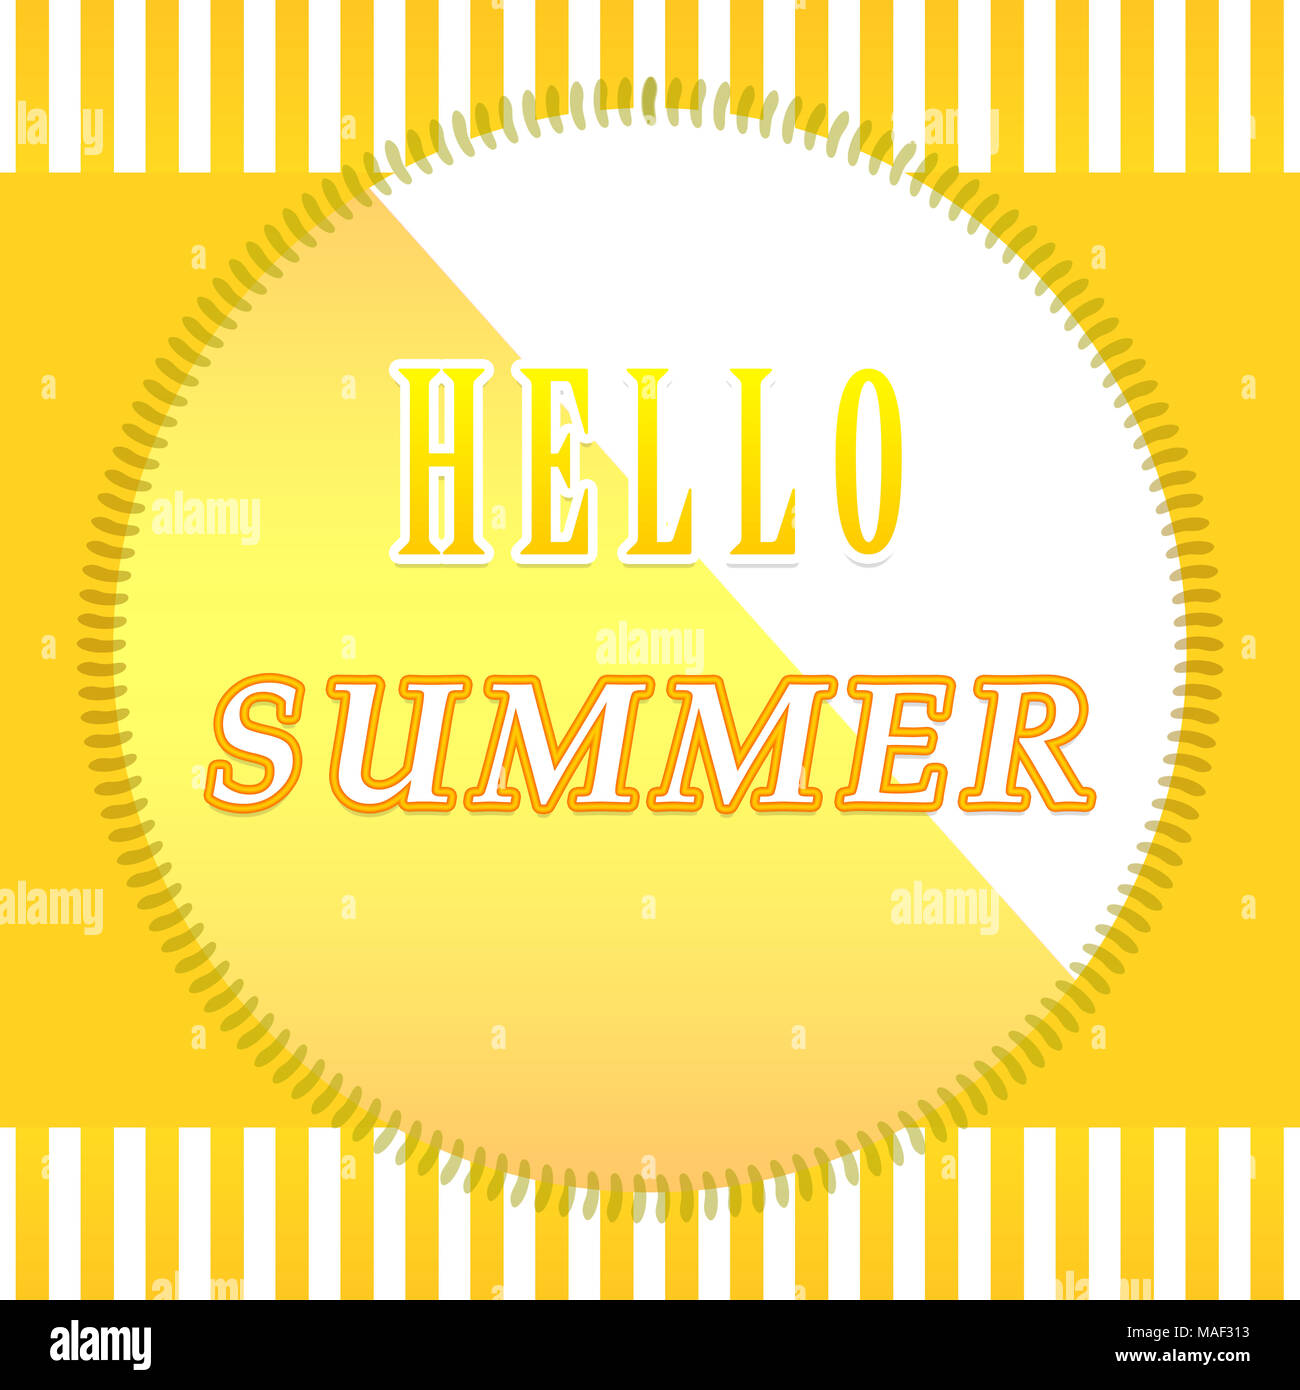 Hello summer background. Design for summer sales, banners, wedding cards - Stock Image